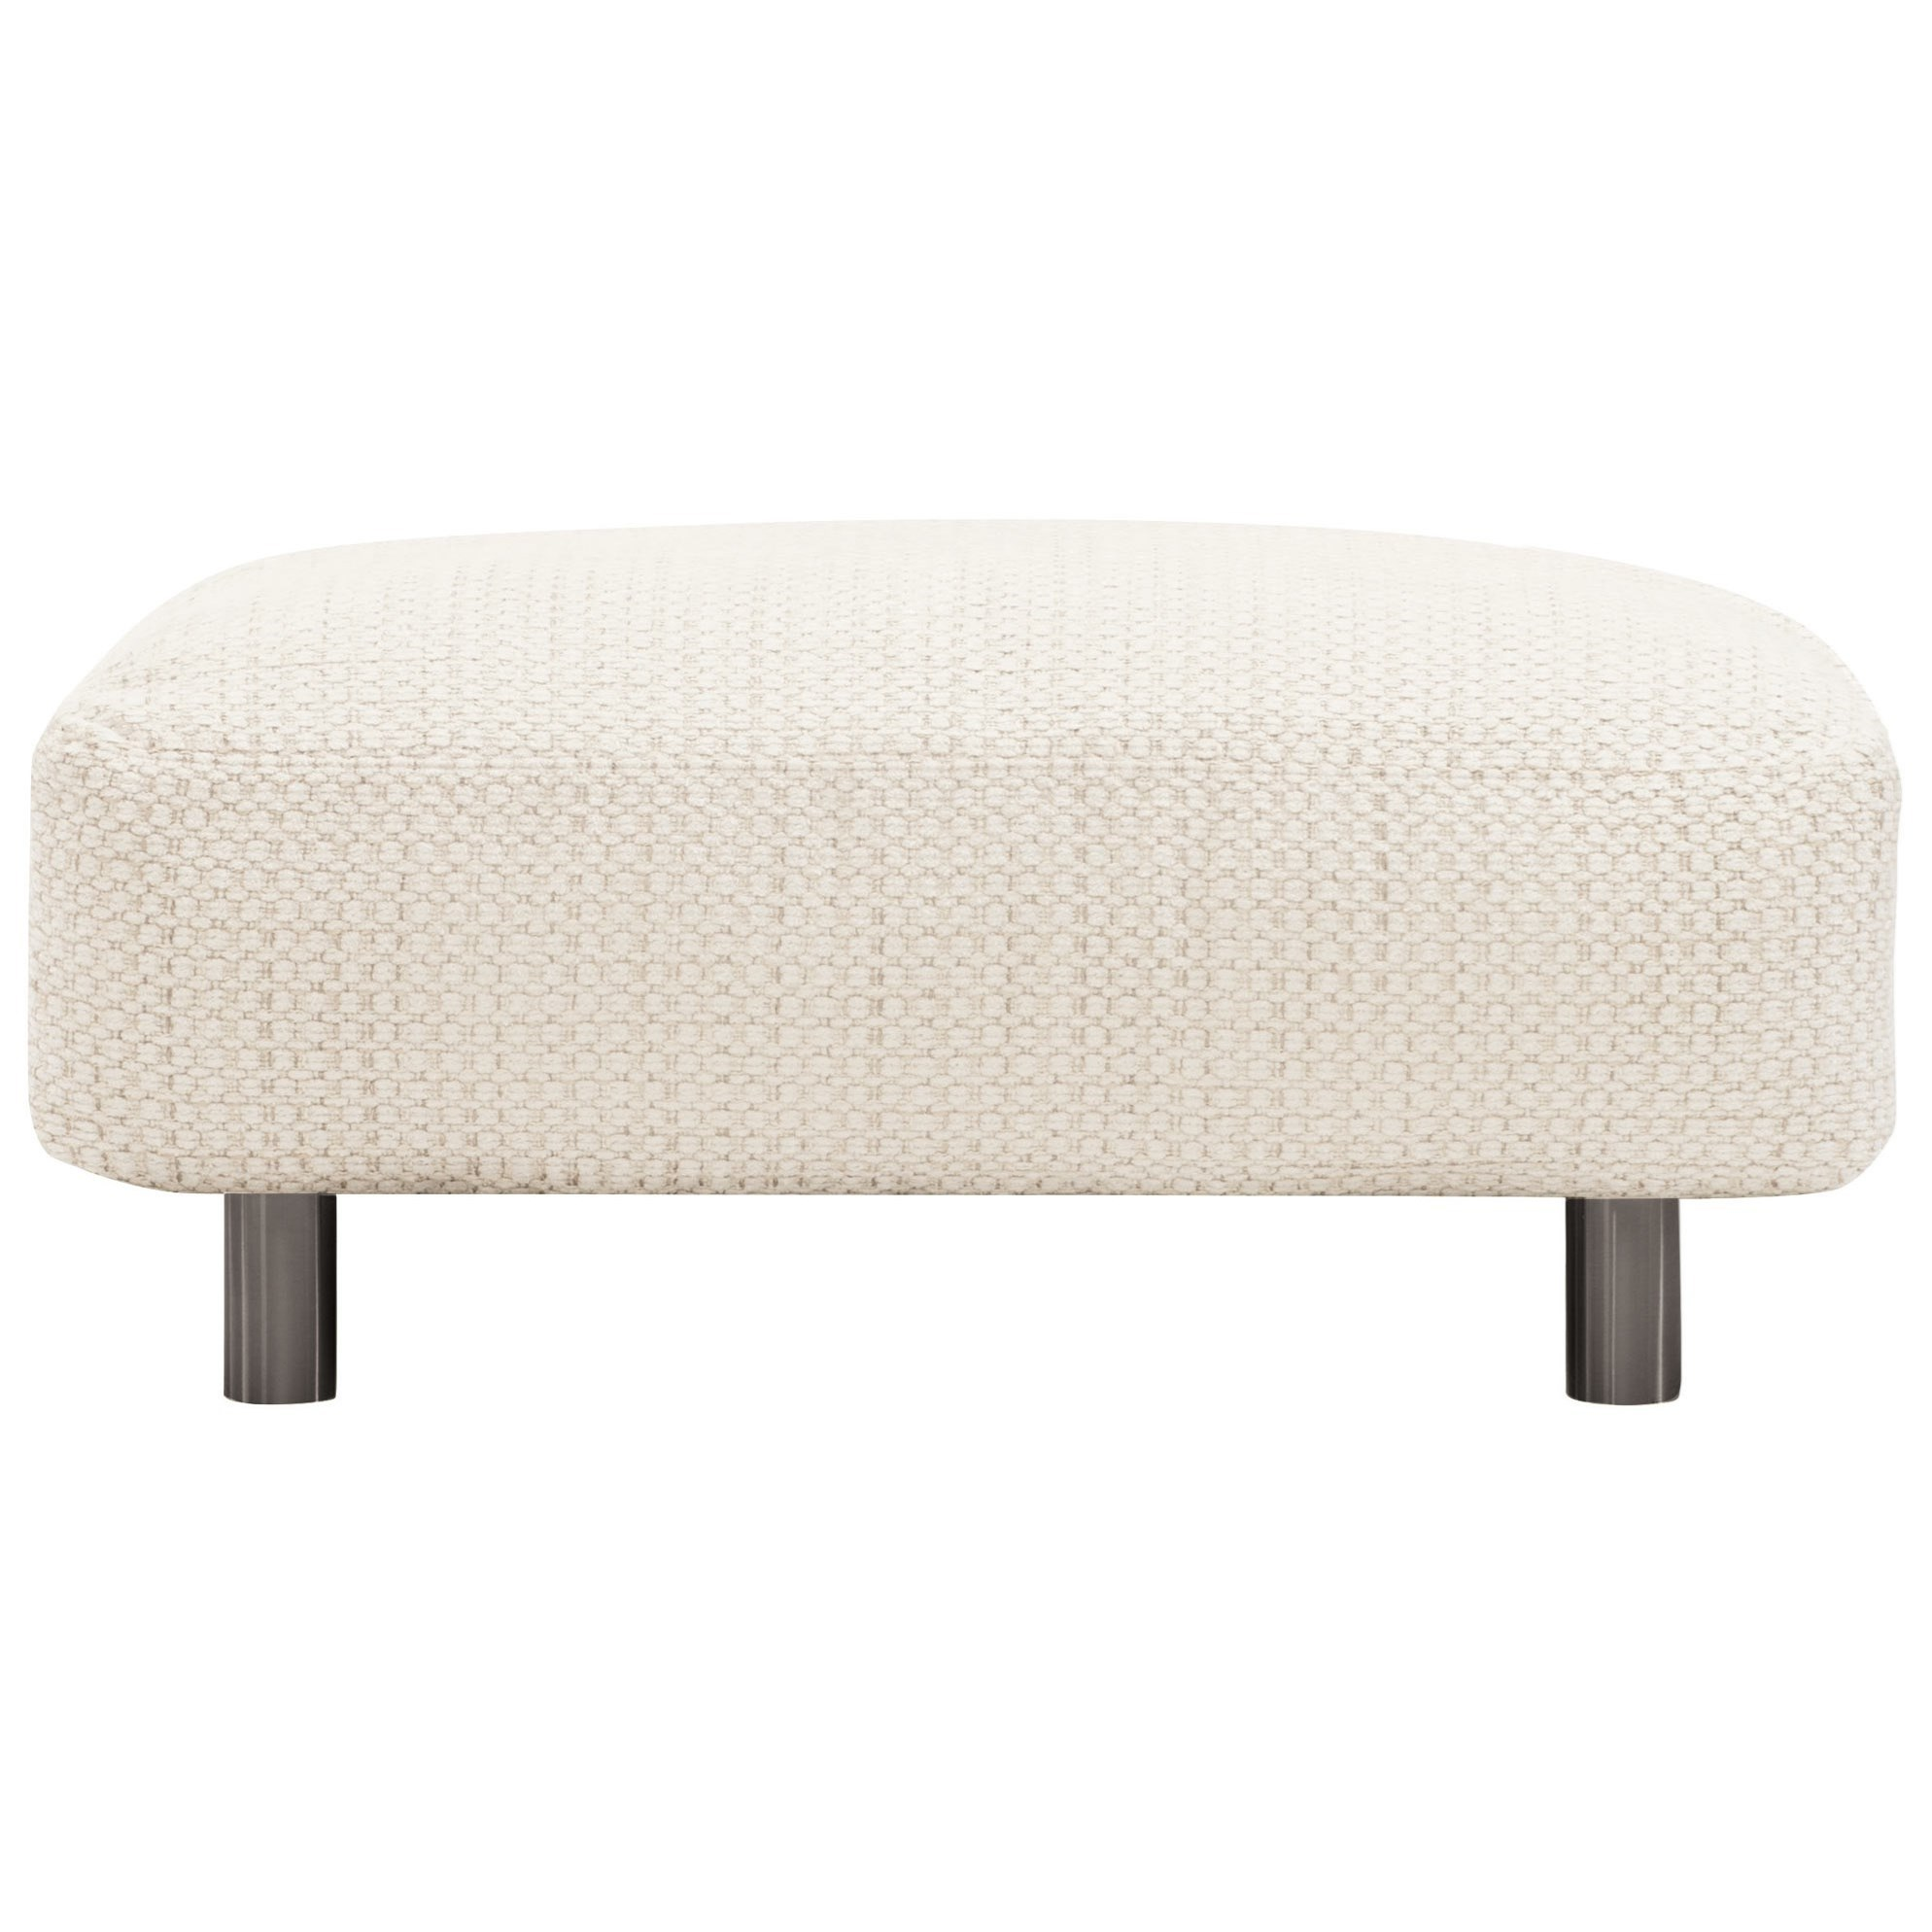 Exteriors - Avanni Ottoman by Bernhardt at Fisher Home Furnishings